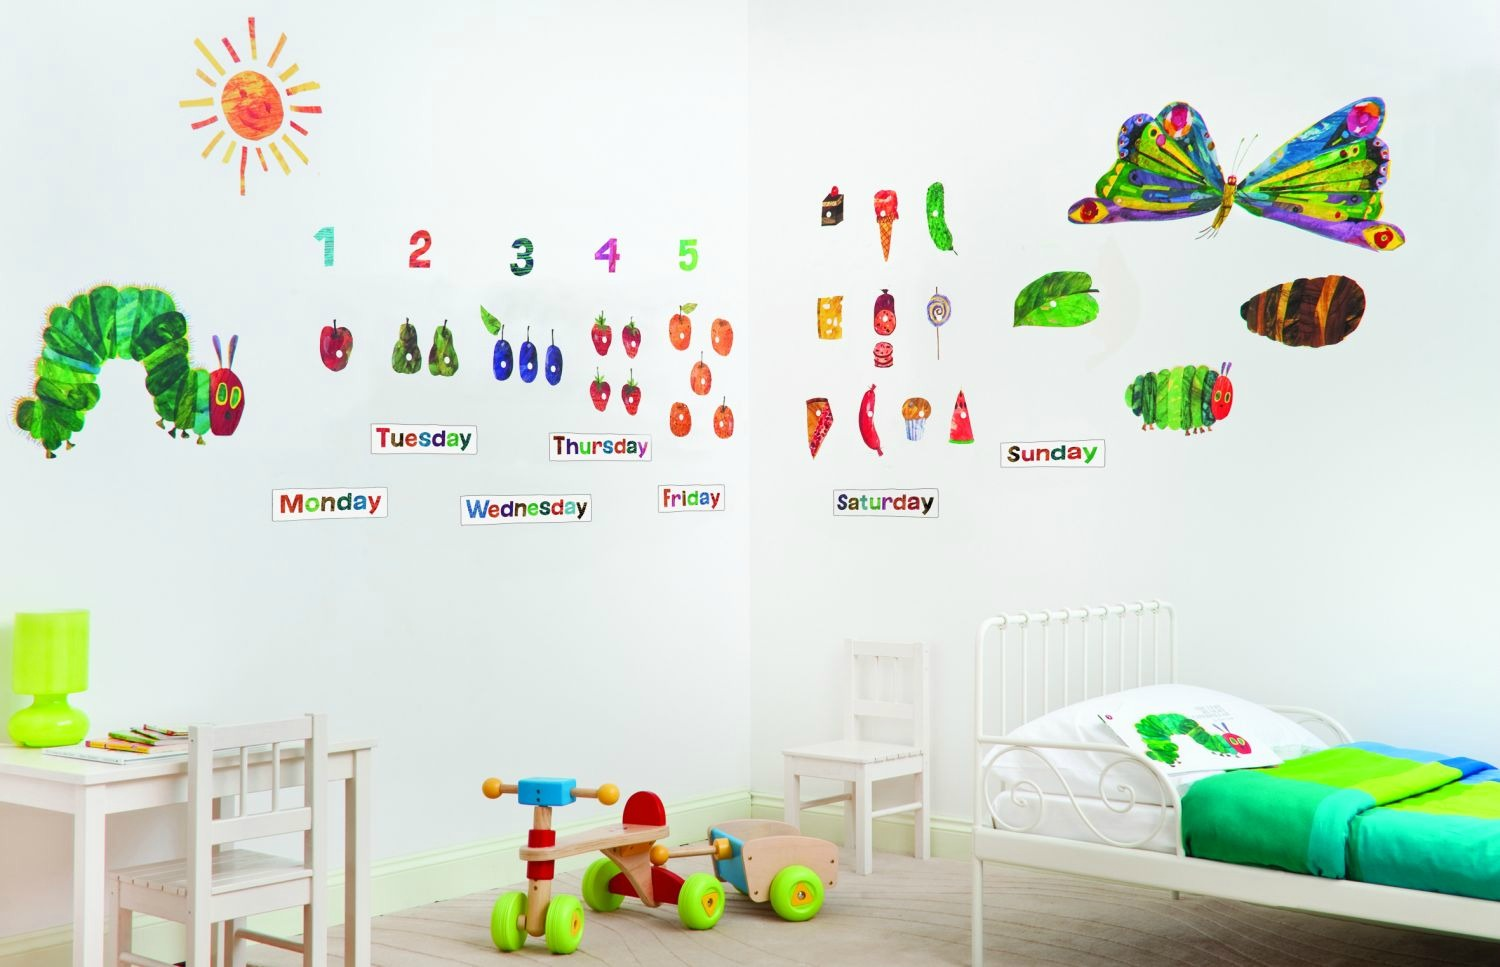 Elegant Very Hungry Caterpillar Wall Stickers. Yes, Itu0027s Wall Stickers Based On The  Classic Eric Carle Book. In Fact, Itu0027s 49 Stickers Based On The Classic  Eric ... Part 8